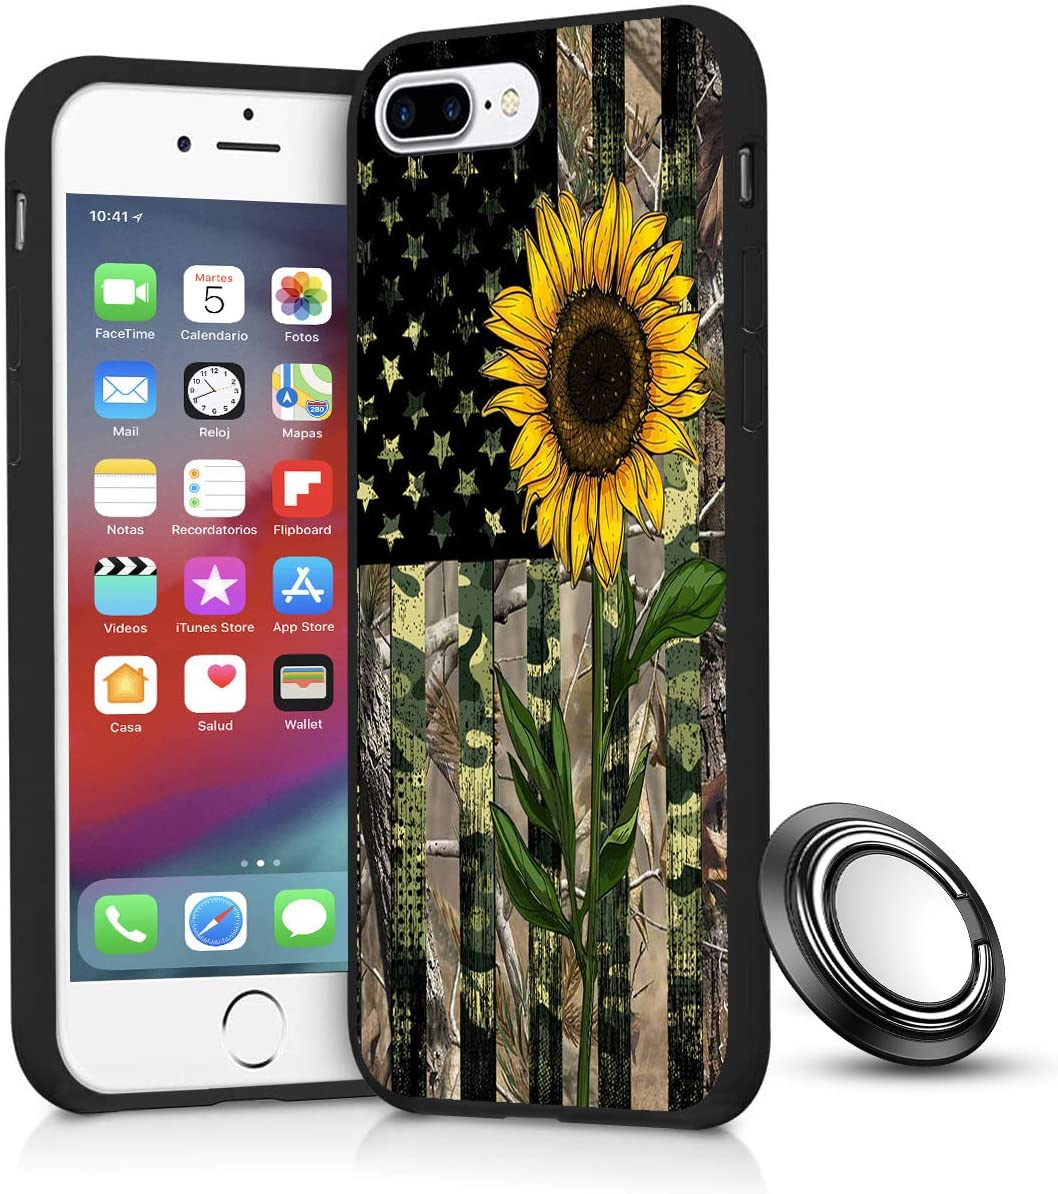 iPhone 8 Plus/7 Plus Case, Sunflower Camouflage American Flag Slim Anti Scratch Shockproof Silicone Soft Rubber TPU Protective Case Cover with Phone Ring Holder Stand for iPhone 7 Plus /8 Plus 5.5